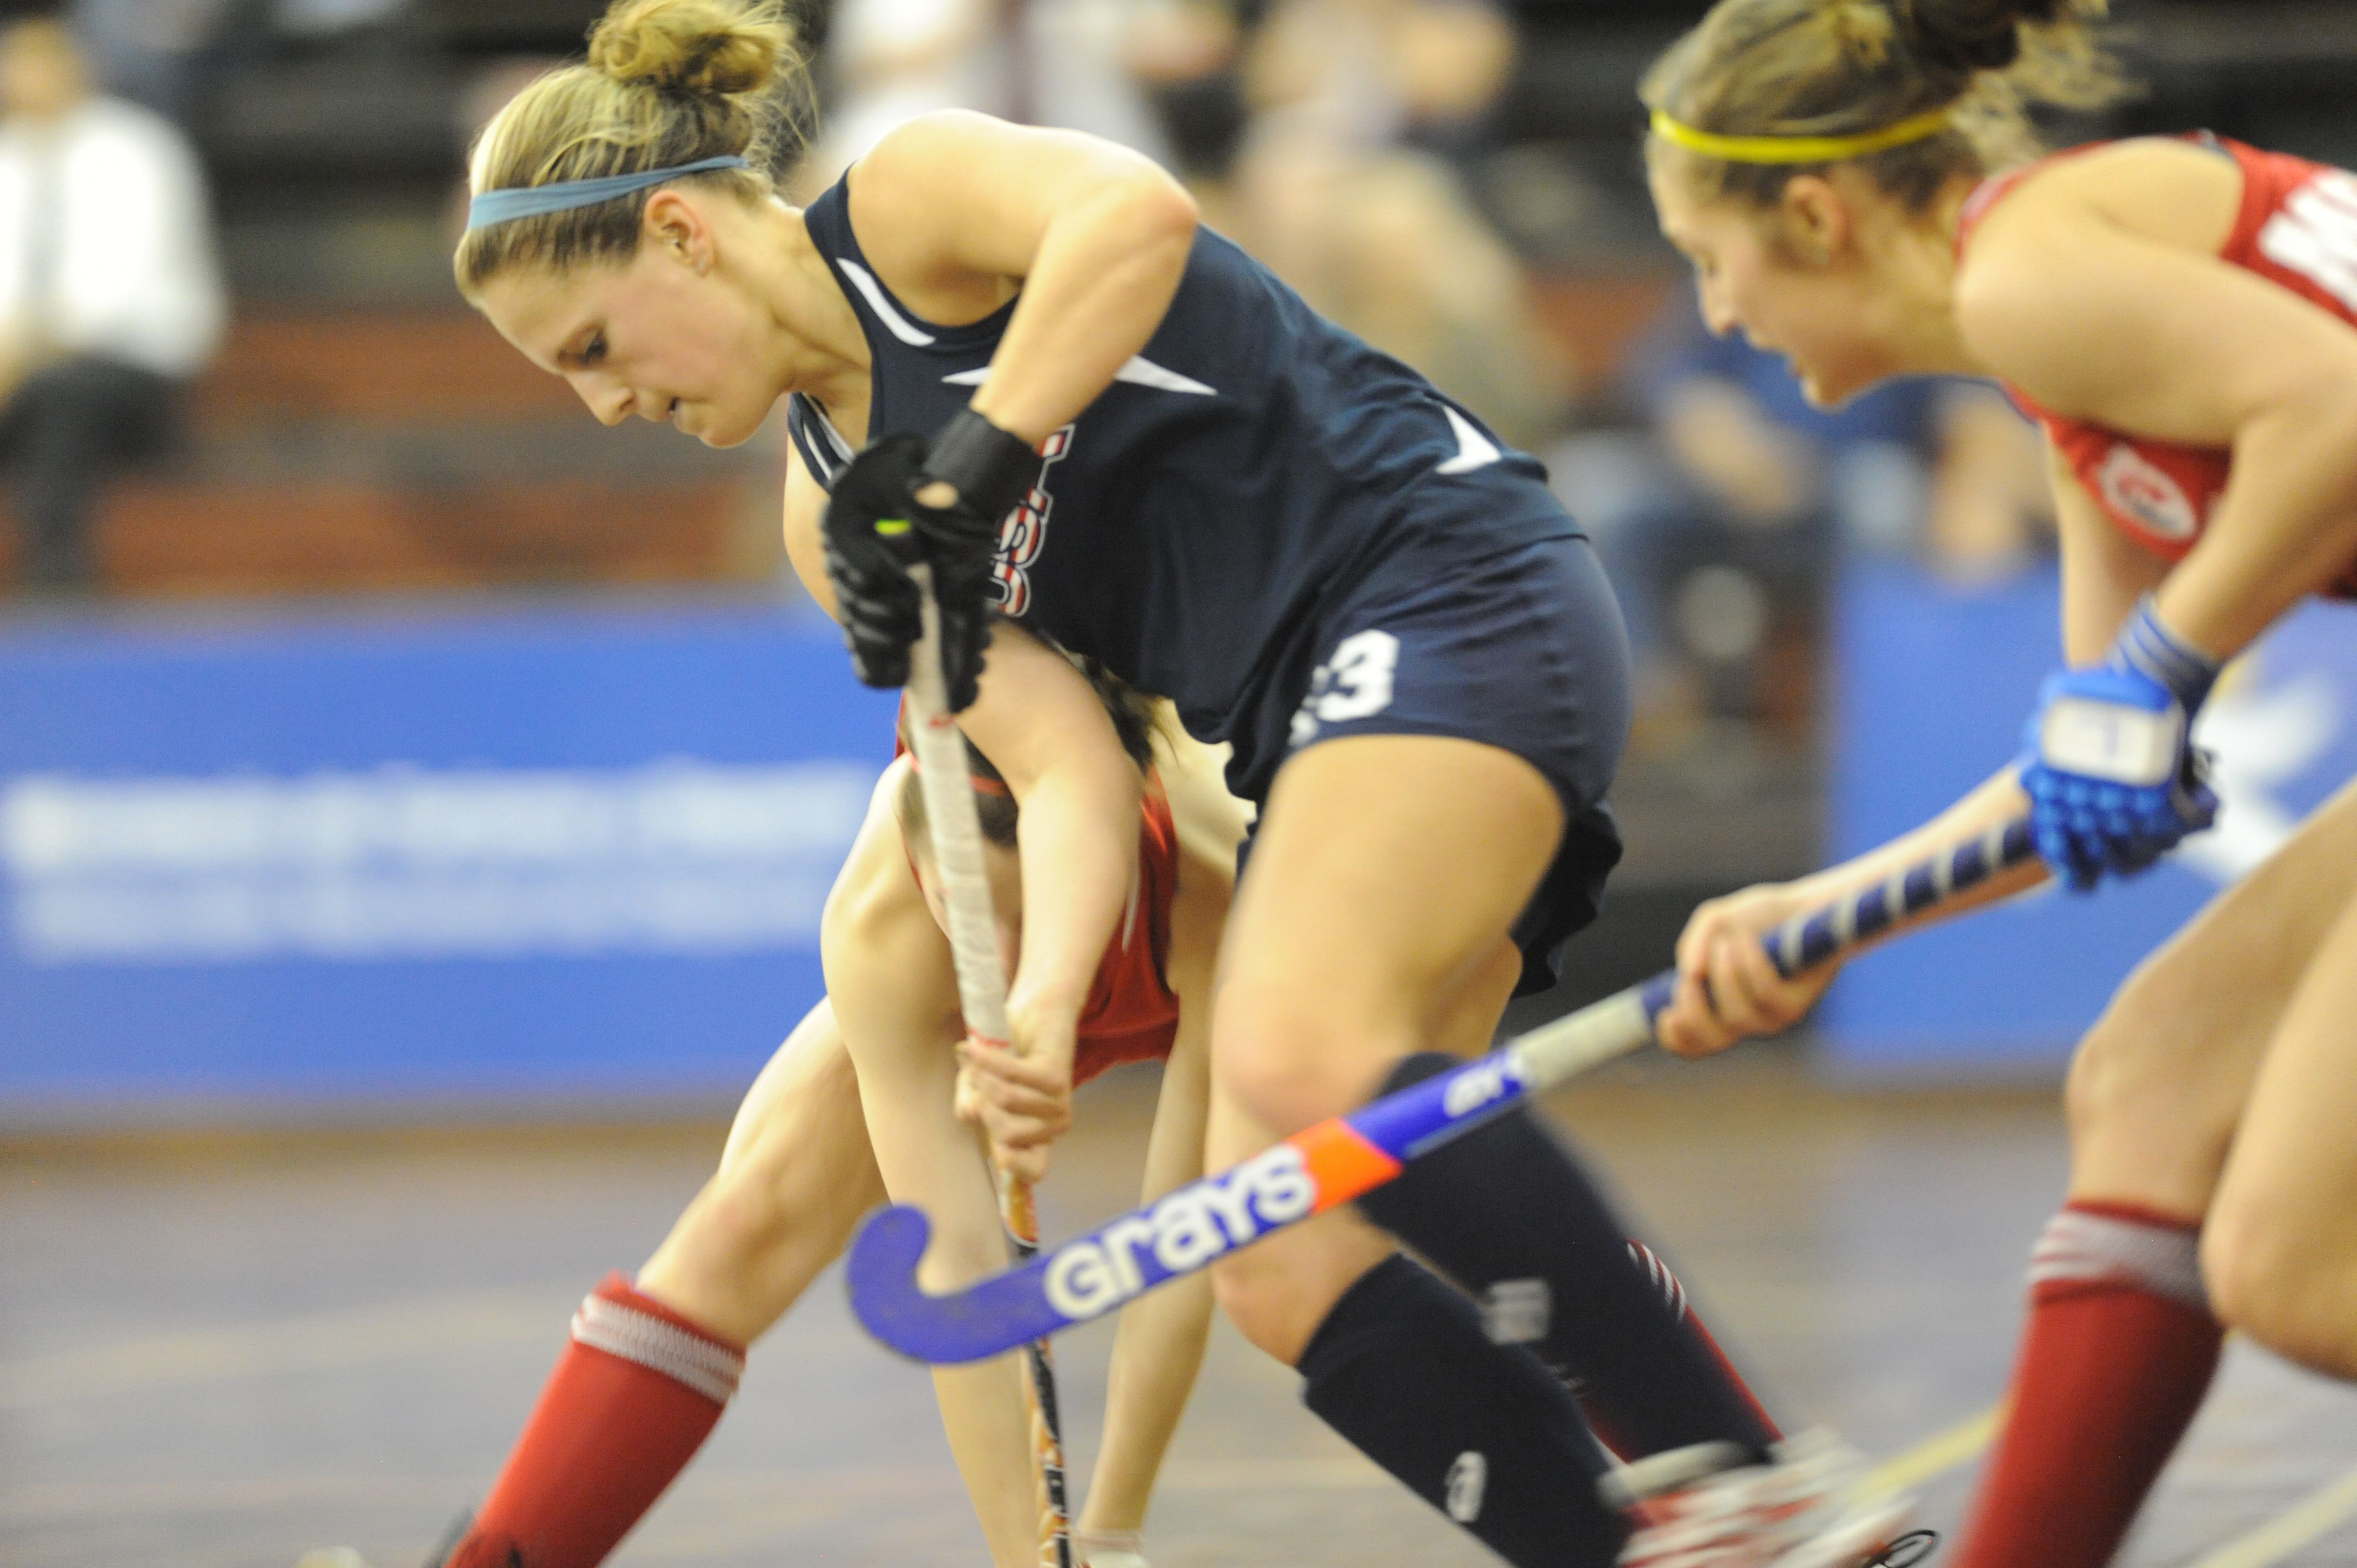 Team Usa Vs Canada At The 2014 Indoor Panam Cup   With